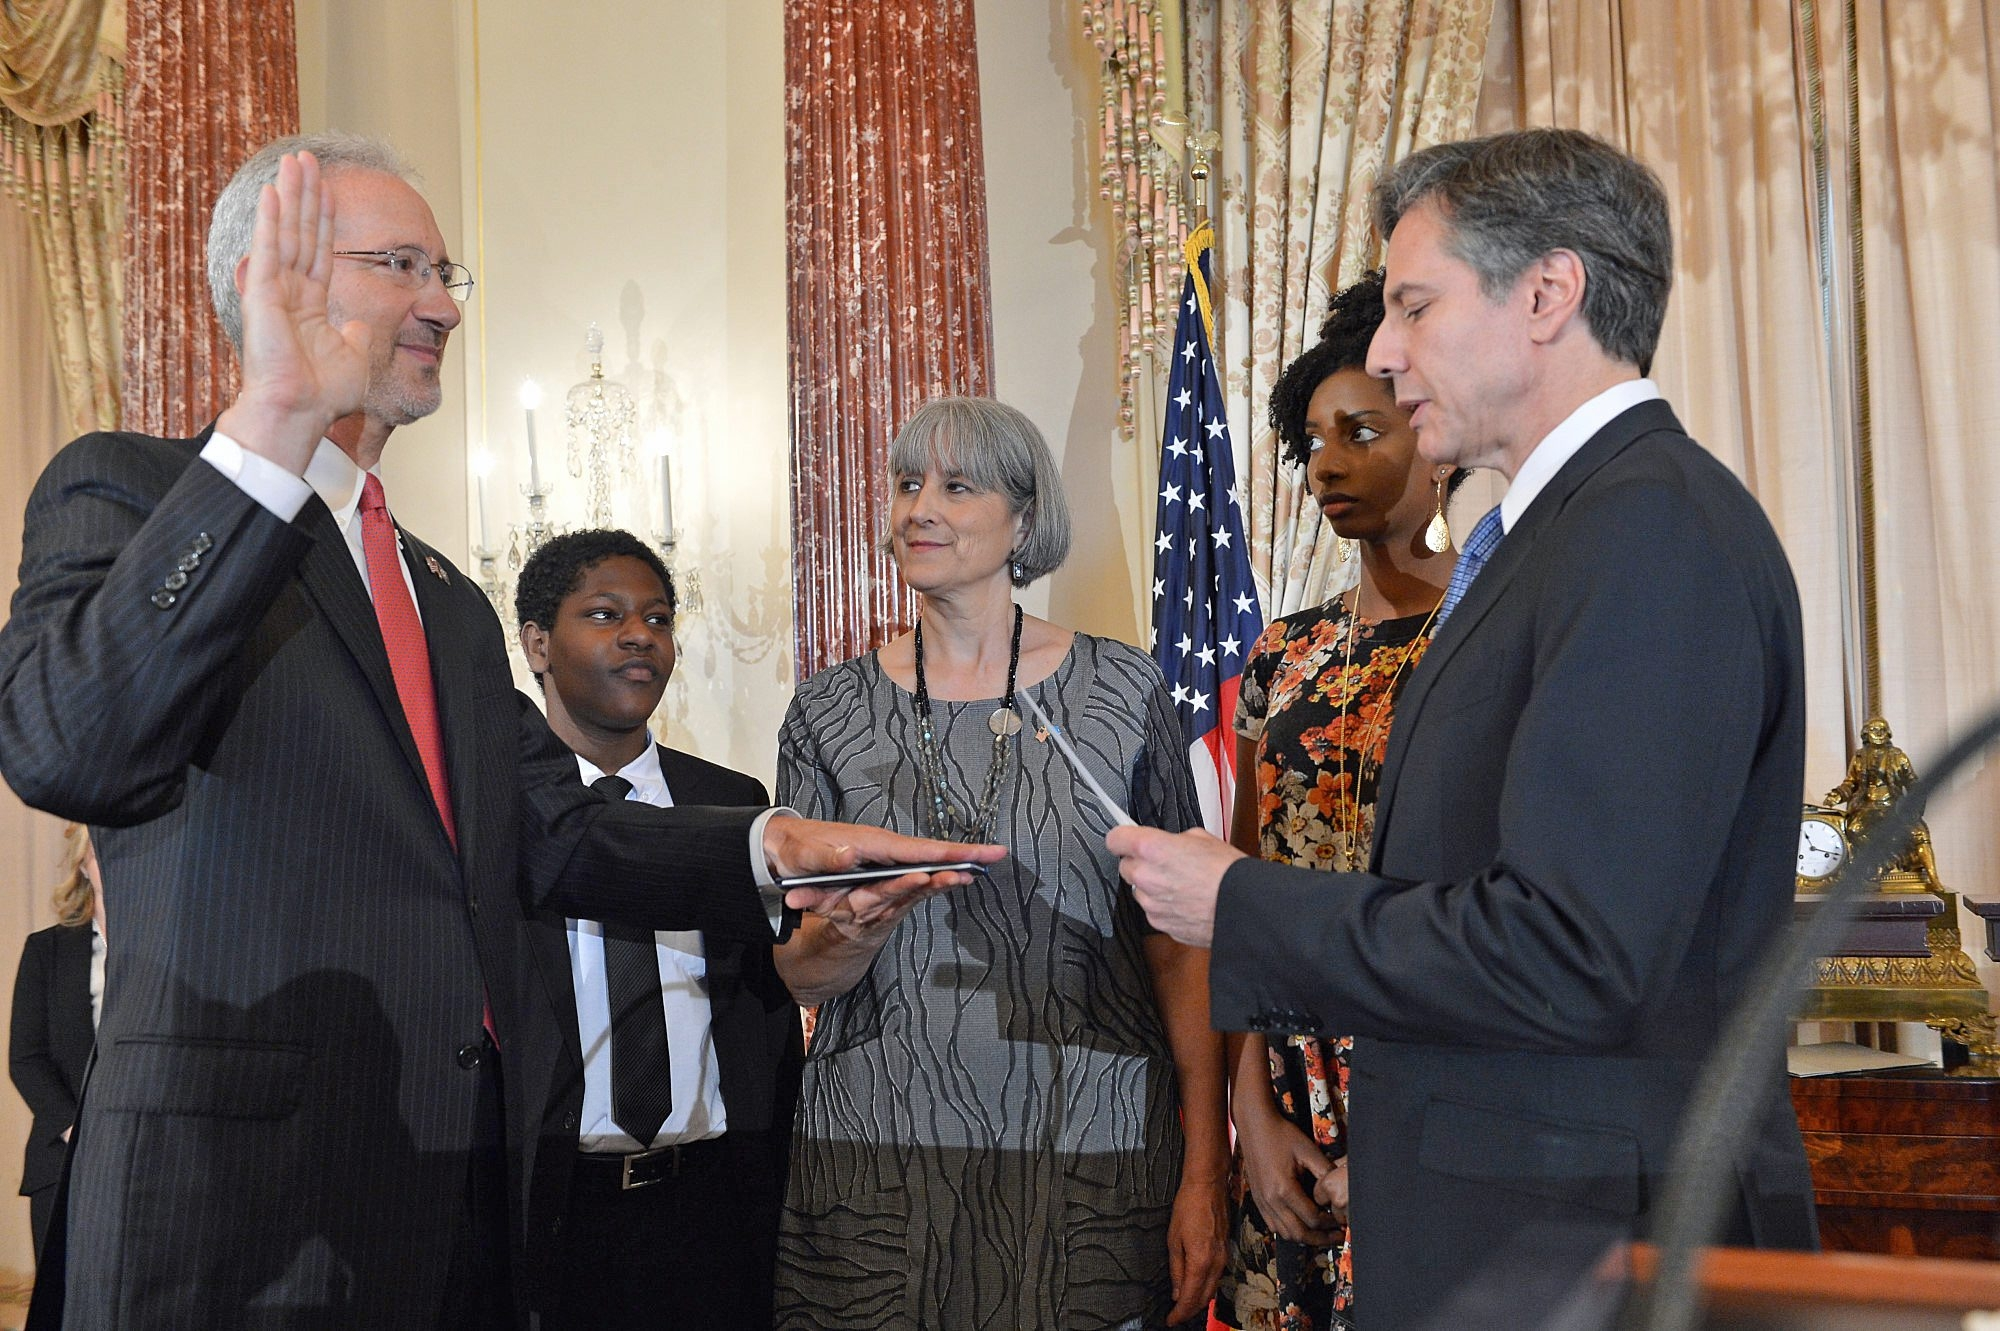 At State Department, WNY native Stephen M. Schwartz takes oath Monday as U.S. ambassador to Somalia from Deputy Secretary of State Antony J. Blinken. Joining in the ceremony are Schwartz's wife, Kristy Cook, and the couple's children, Jonas and Hannah.